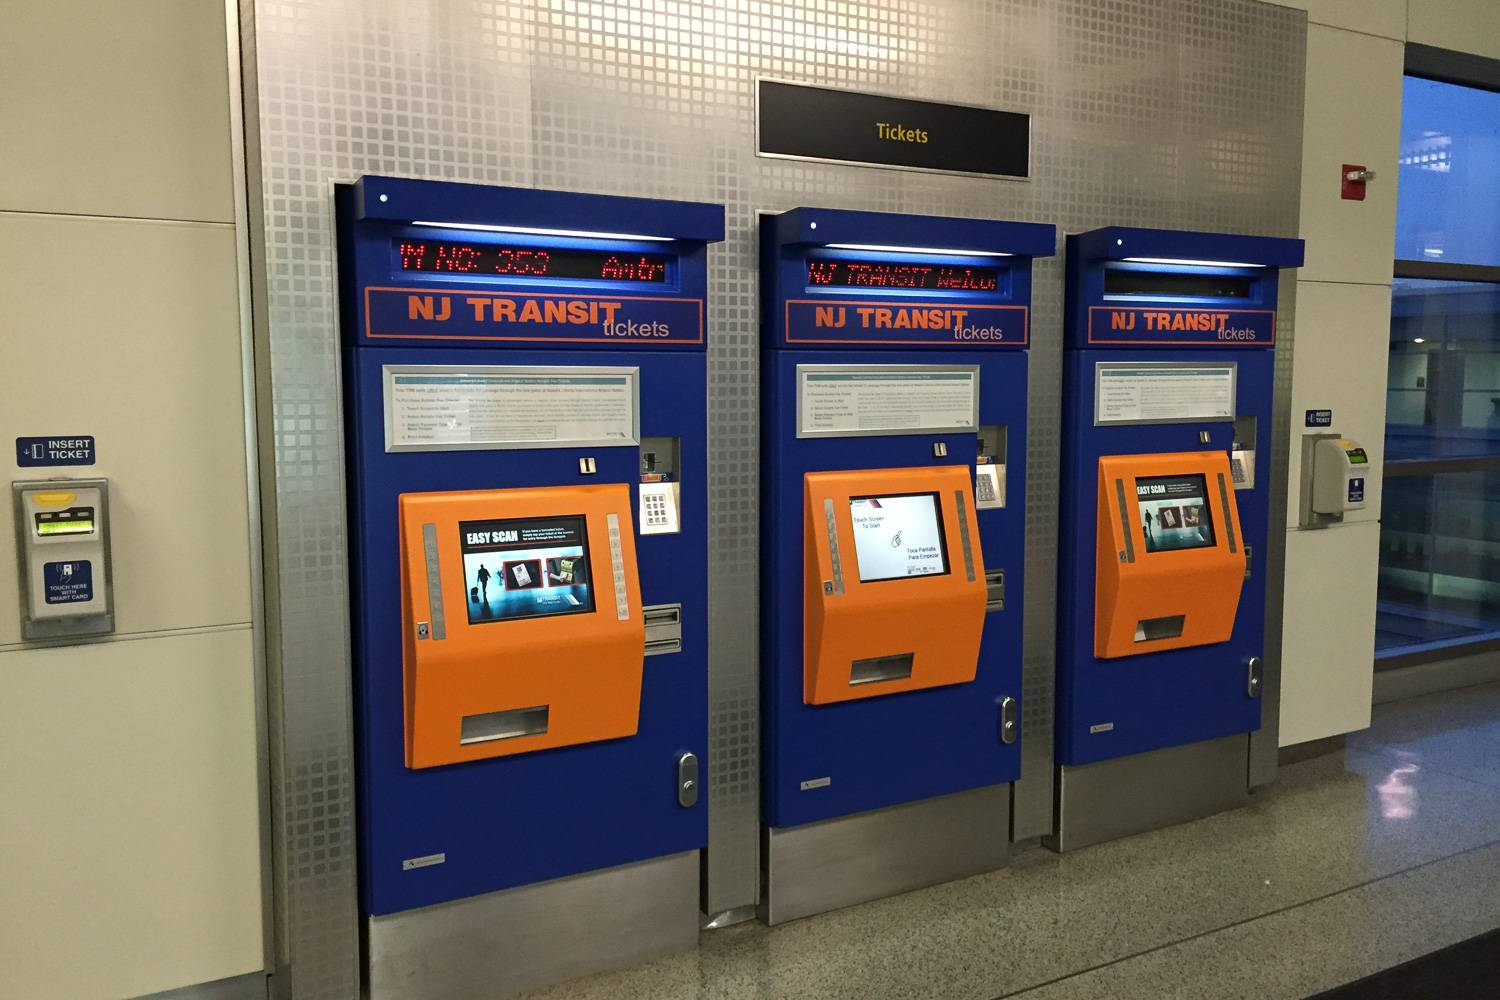 Bild von New Jersey Transit-Ticketautomaten am Newark Liberty International Airport